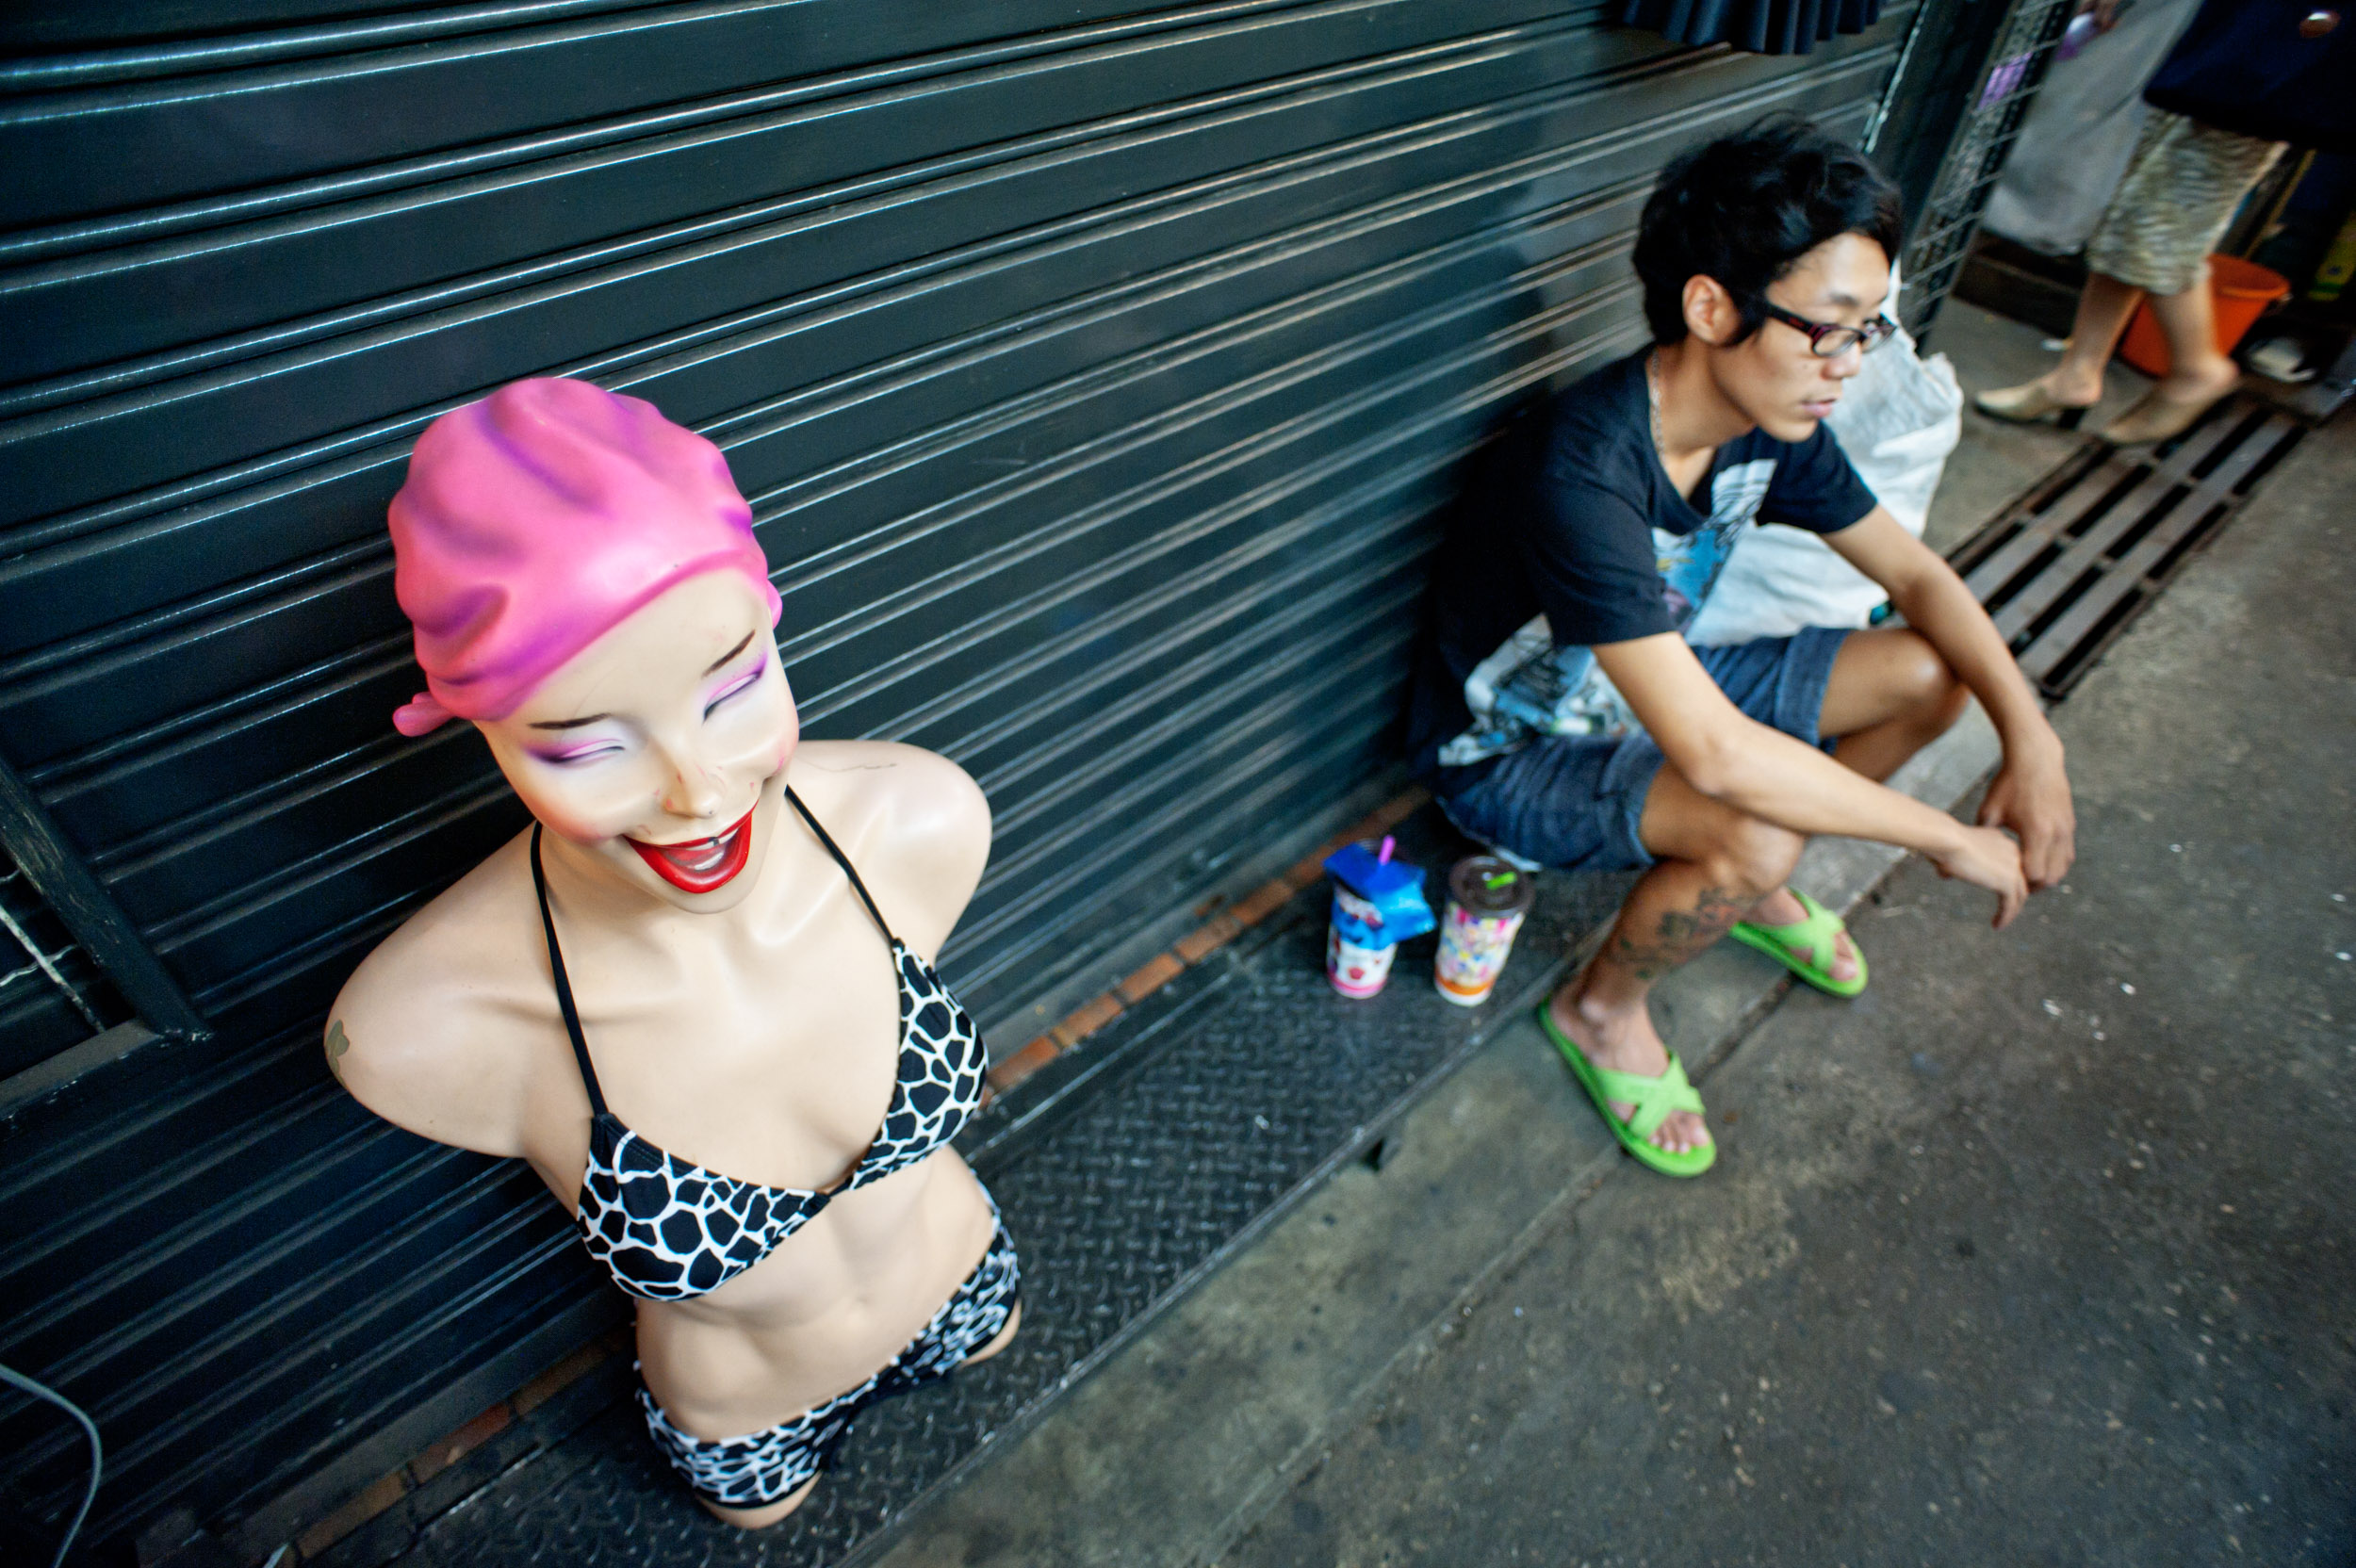 person on the ground with mannequin © Kevin Landwer-Johan